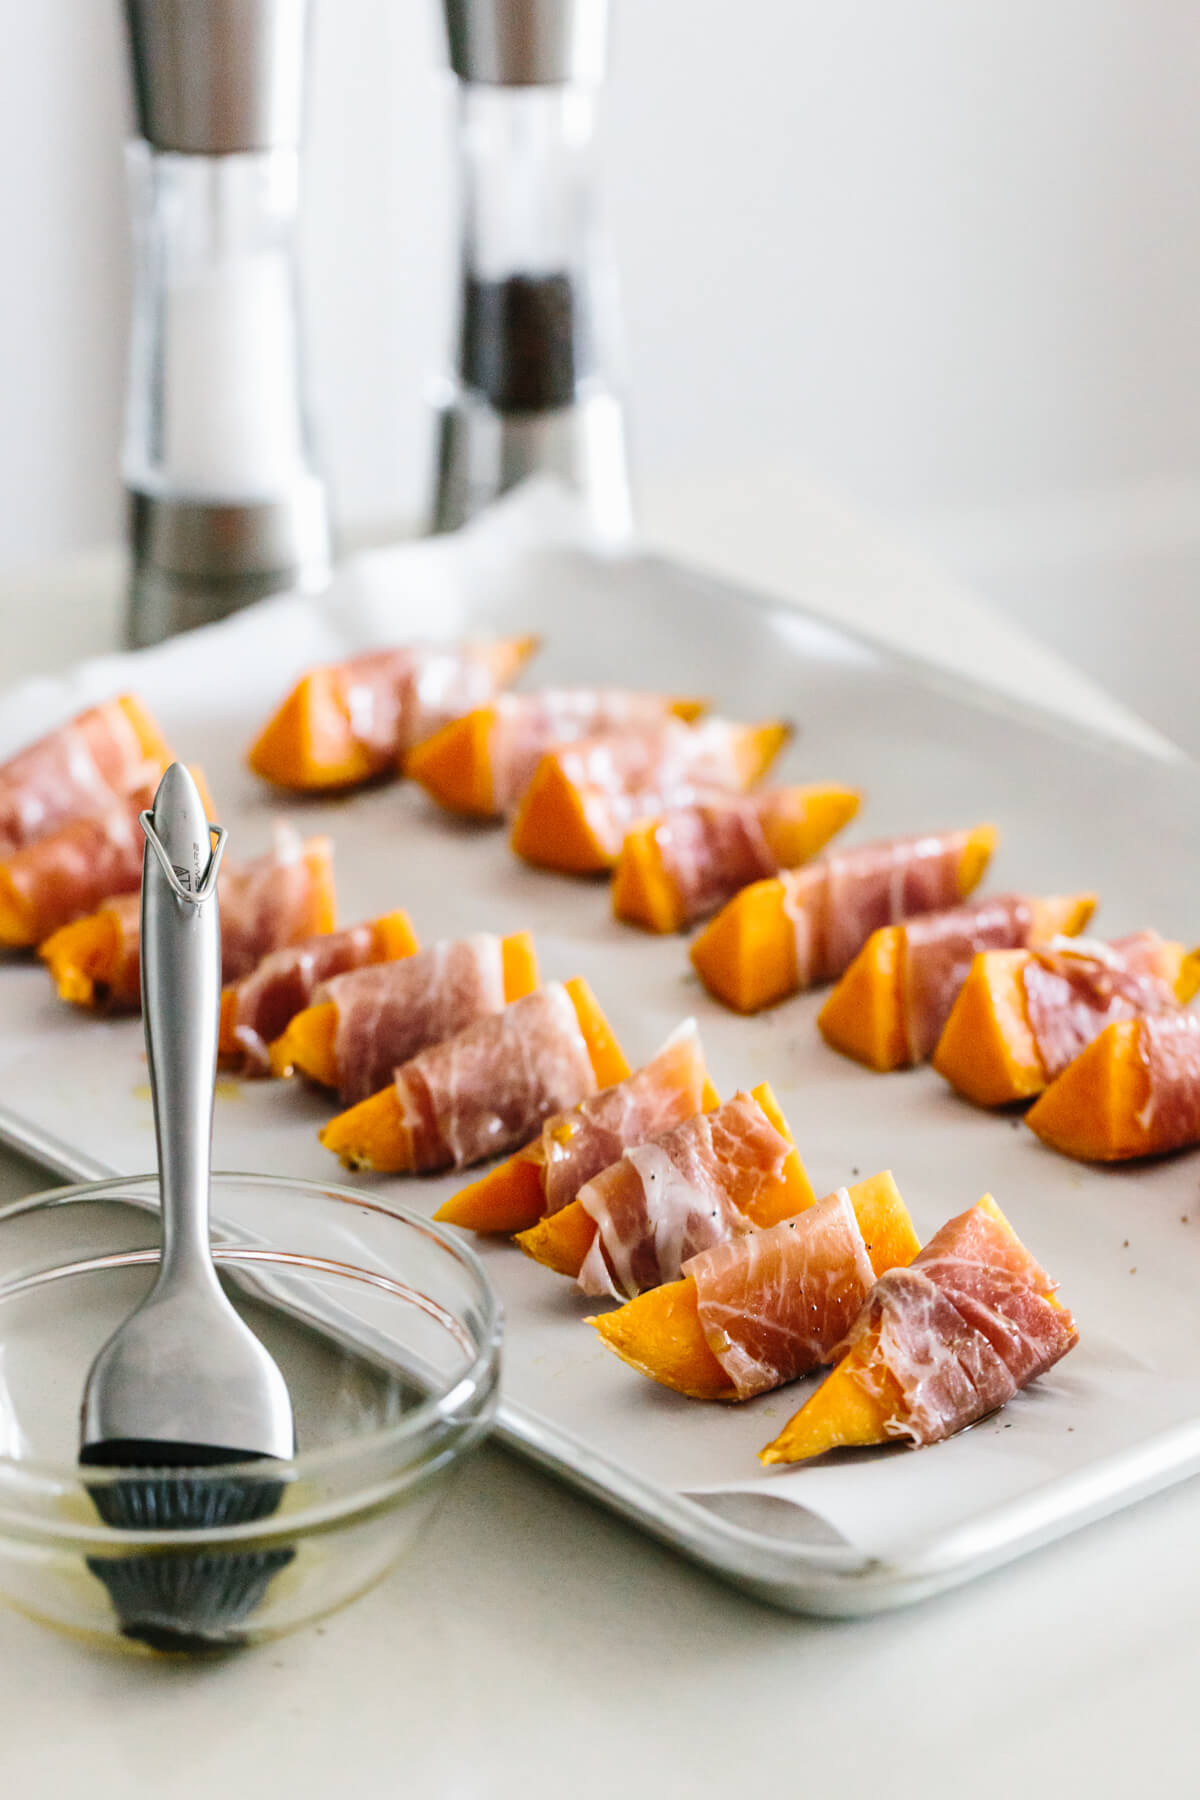 Prosciutto wrapped sweet potatoes all lined up on a baking sheet, ready to be baked.